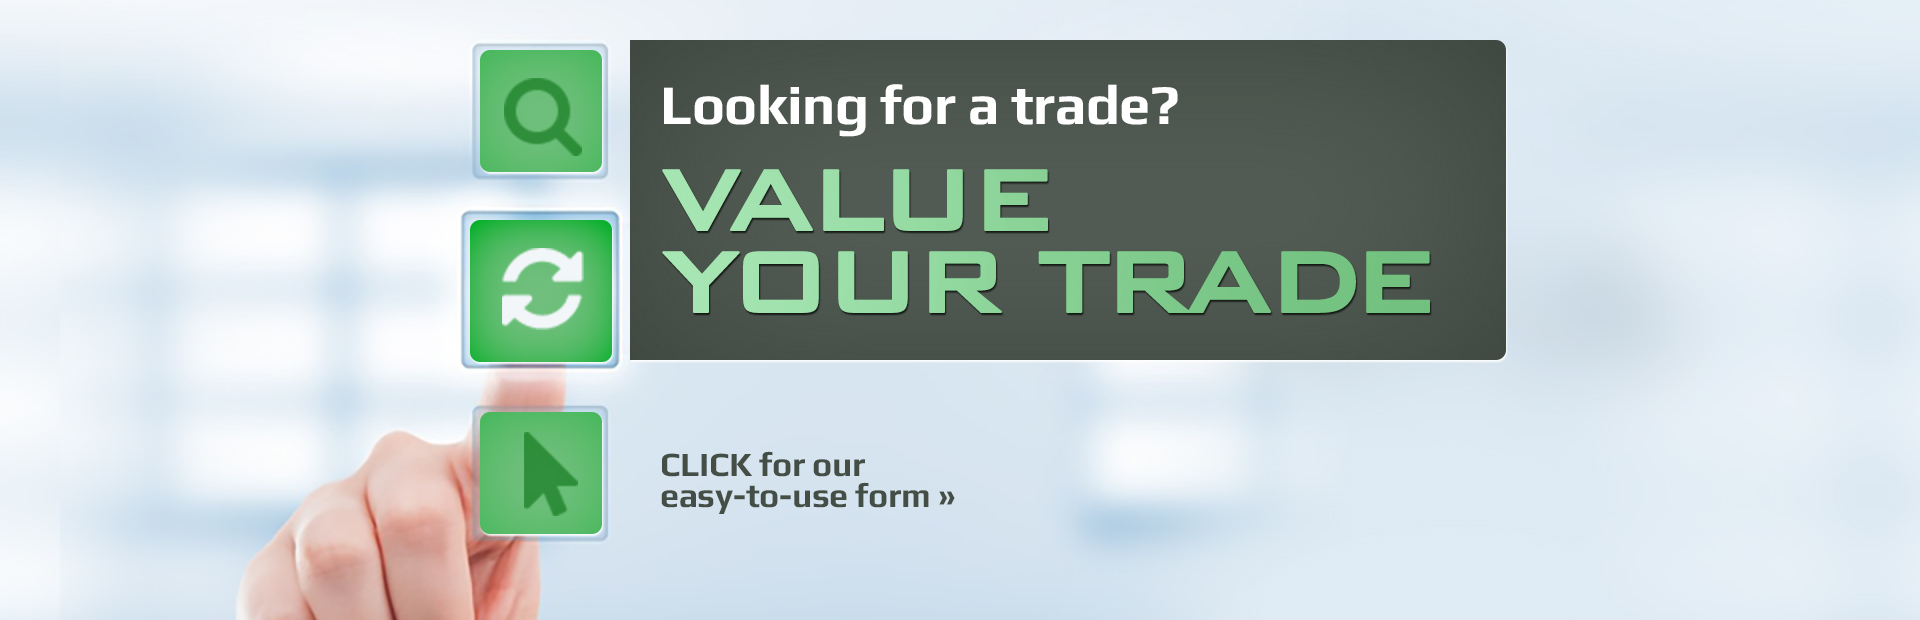 Click here for our easy-to-use trade value form!